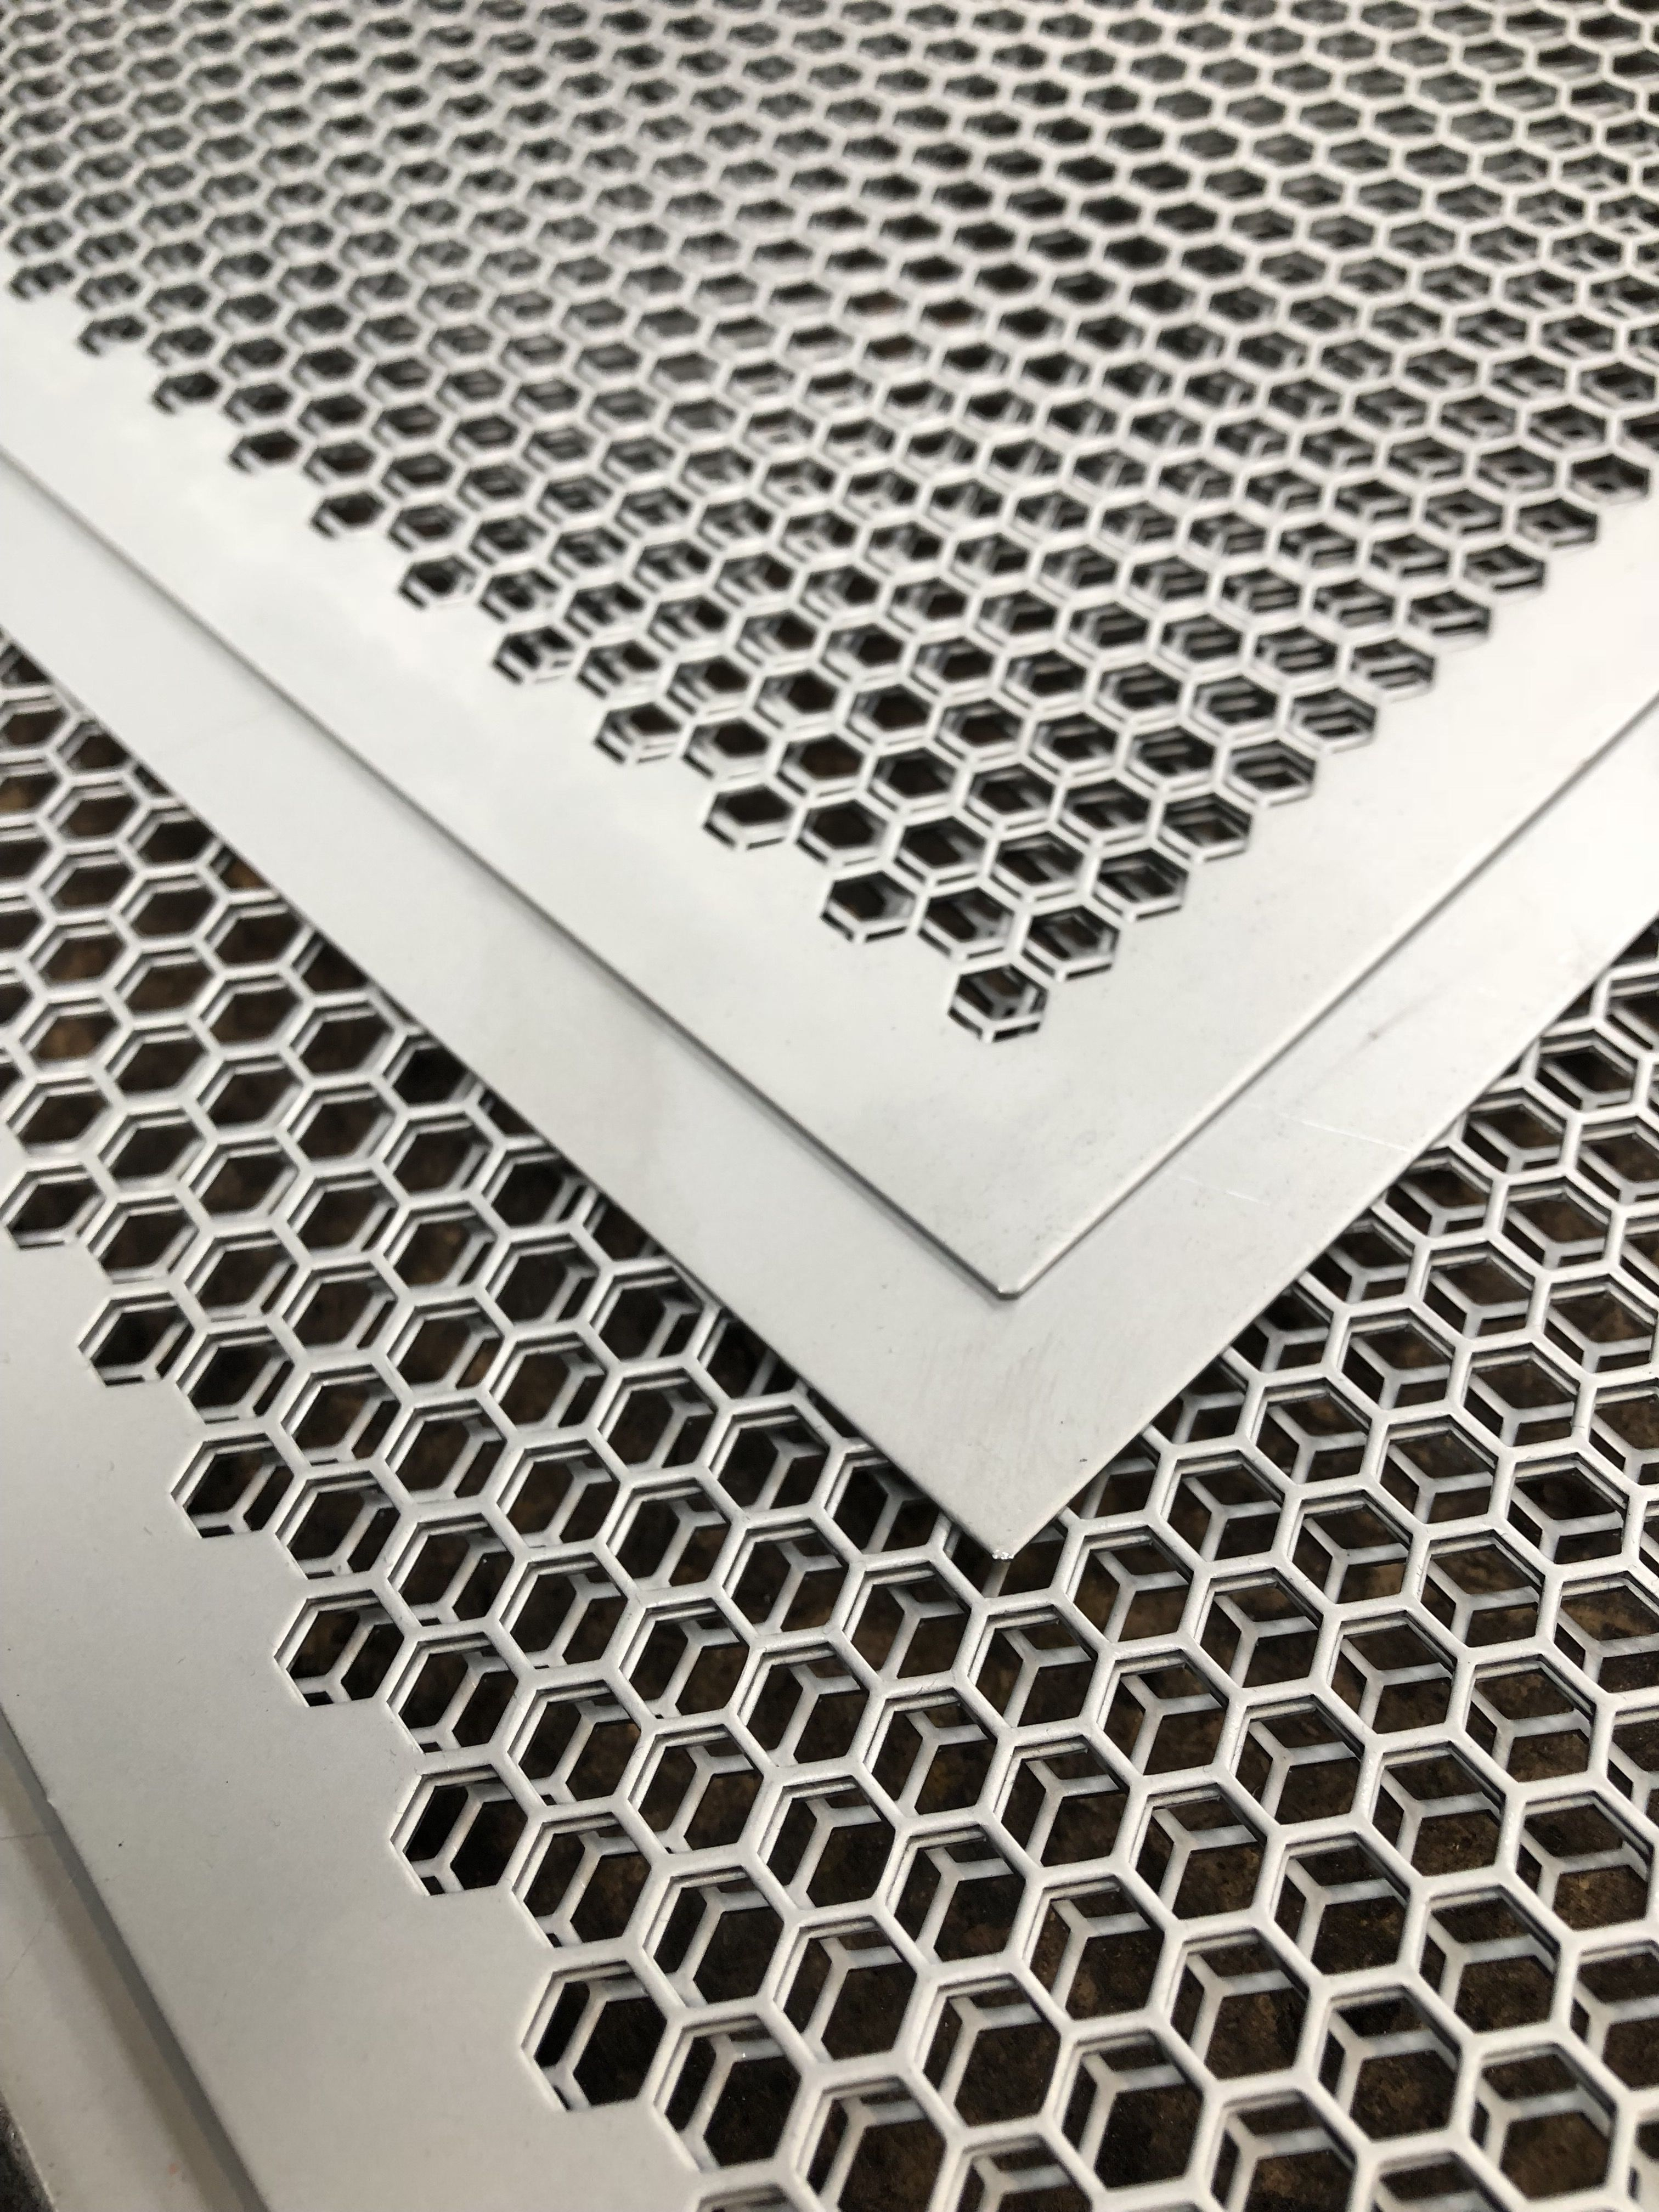 Fielden Hex Perf Perforated Metal Perforated Plate Wood Doors Interior